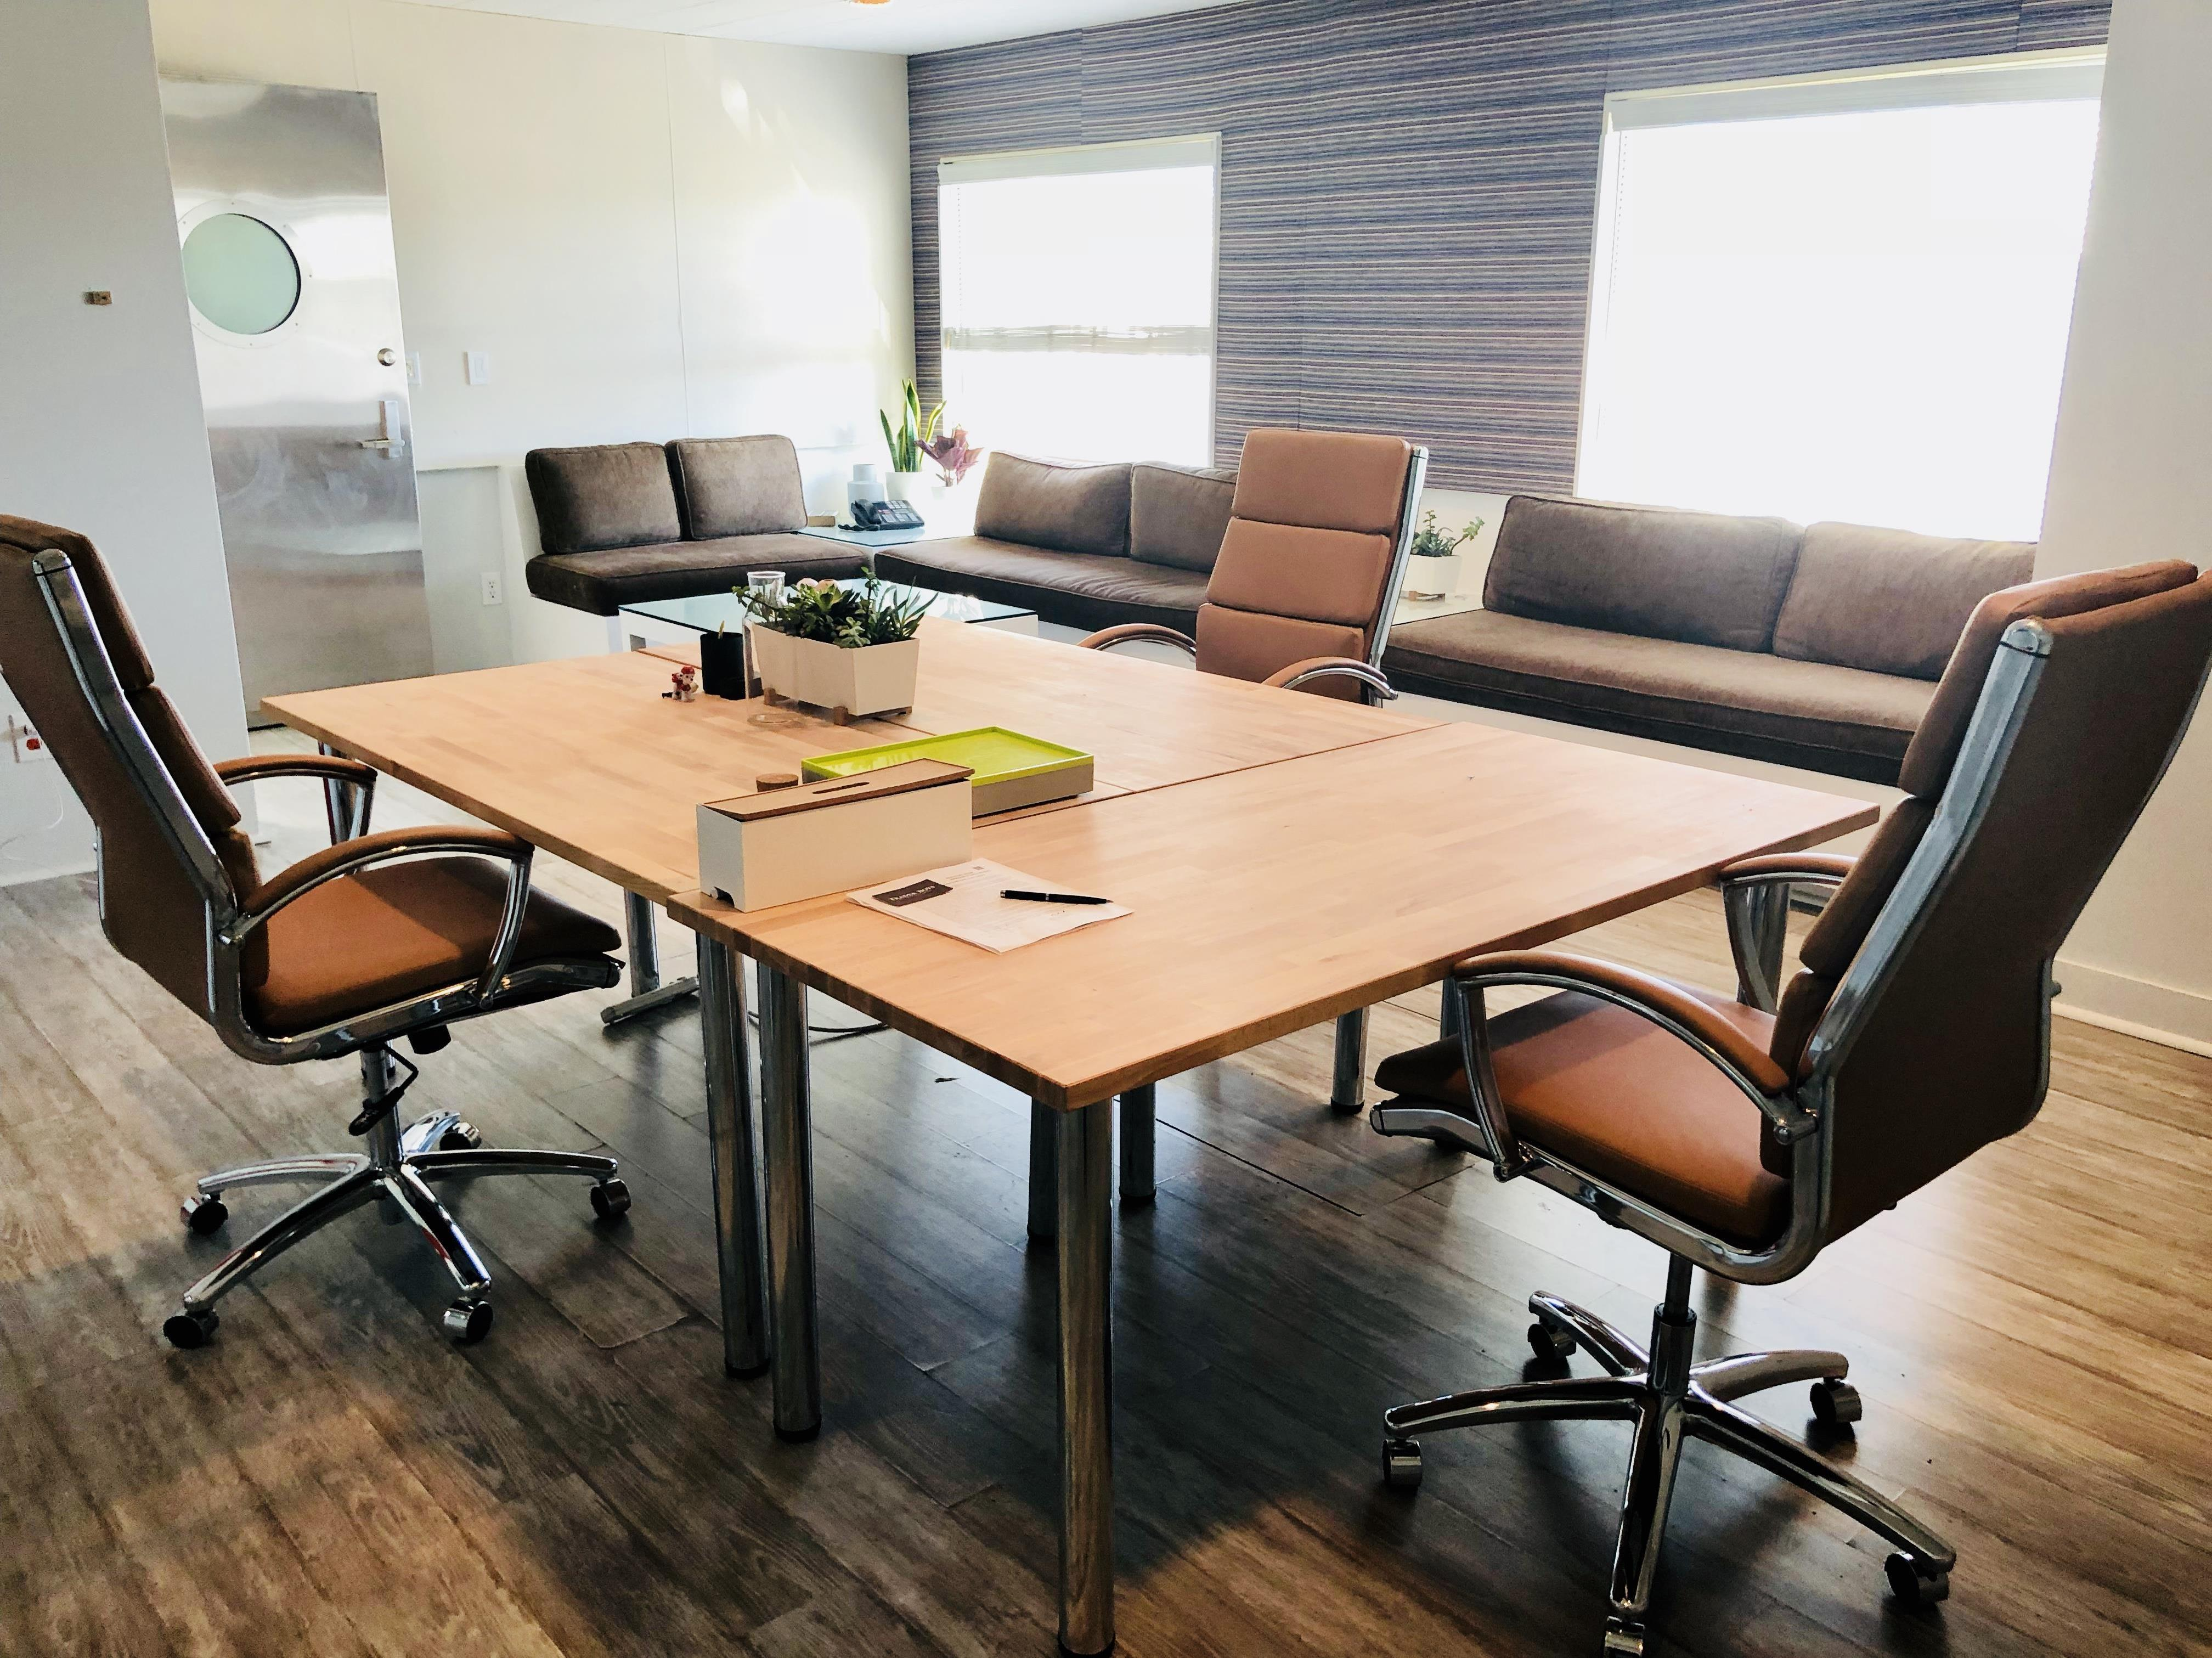 Beach House CoWork - Office for 2-4 Person